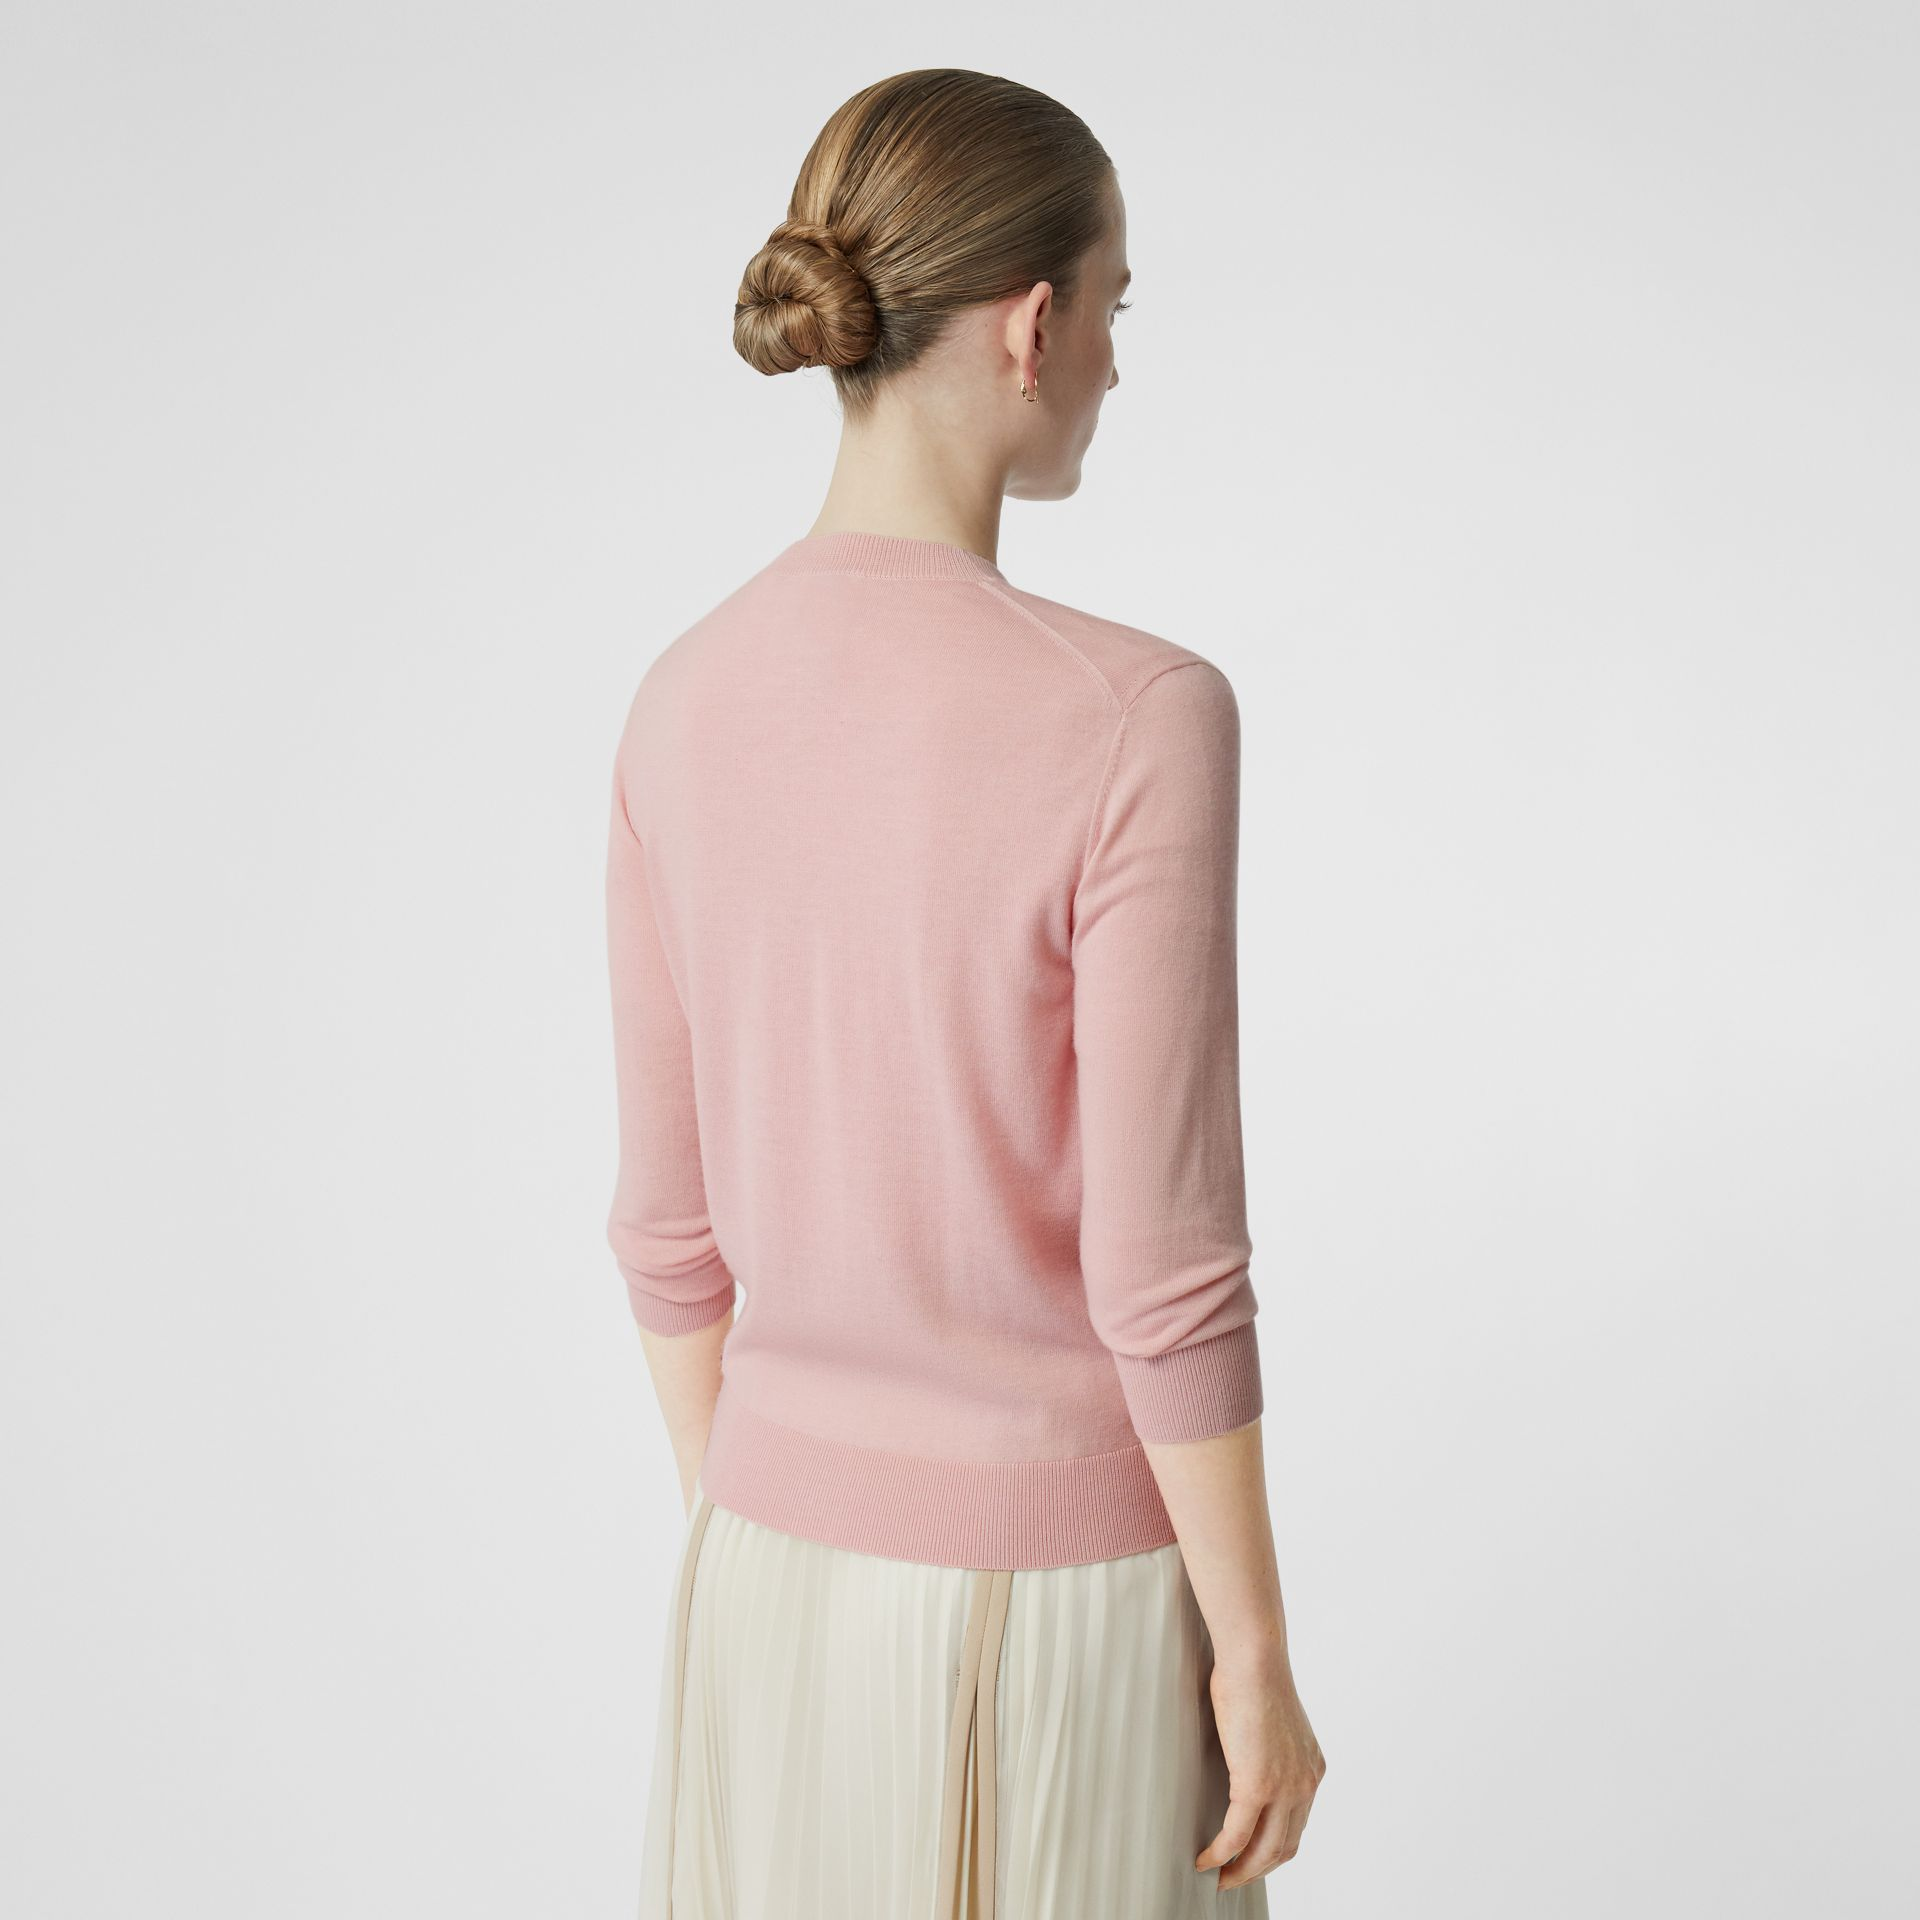 Monogram Motif Cashmere Cardigan in Pink - Women | Burberry United Kingdom - gallery image 2